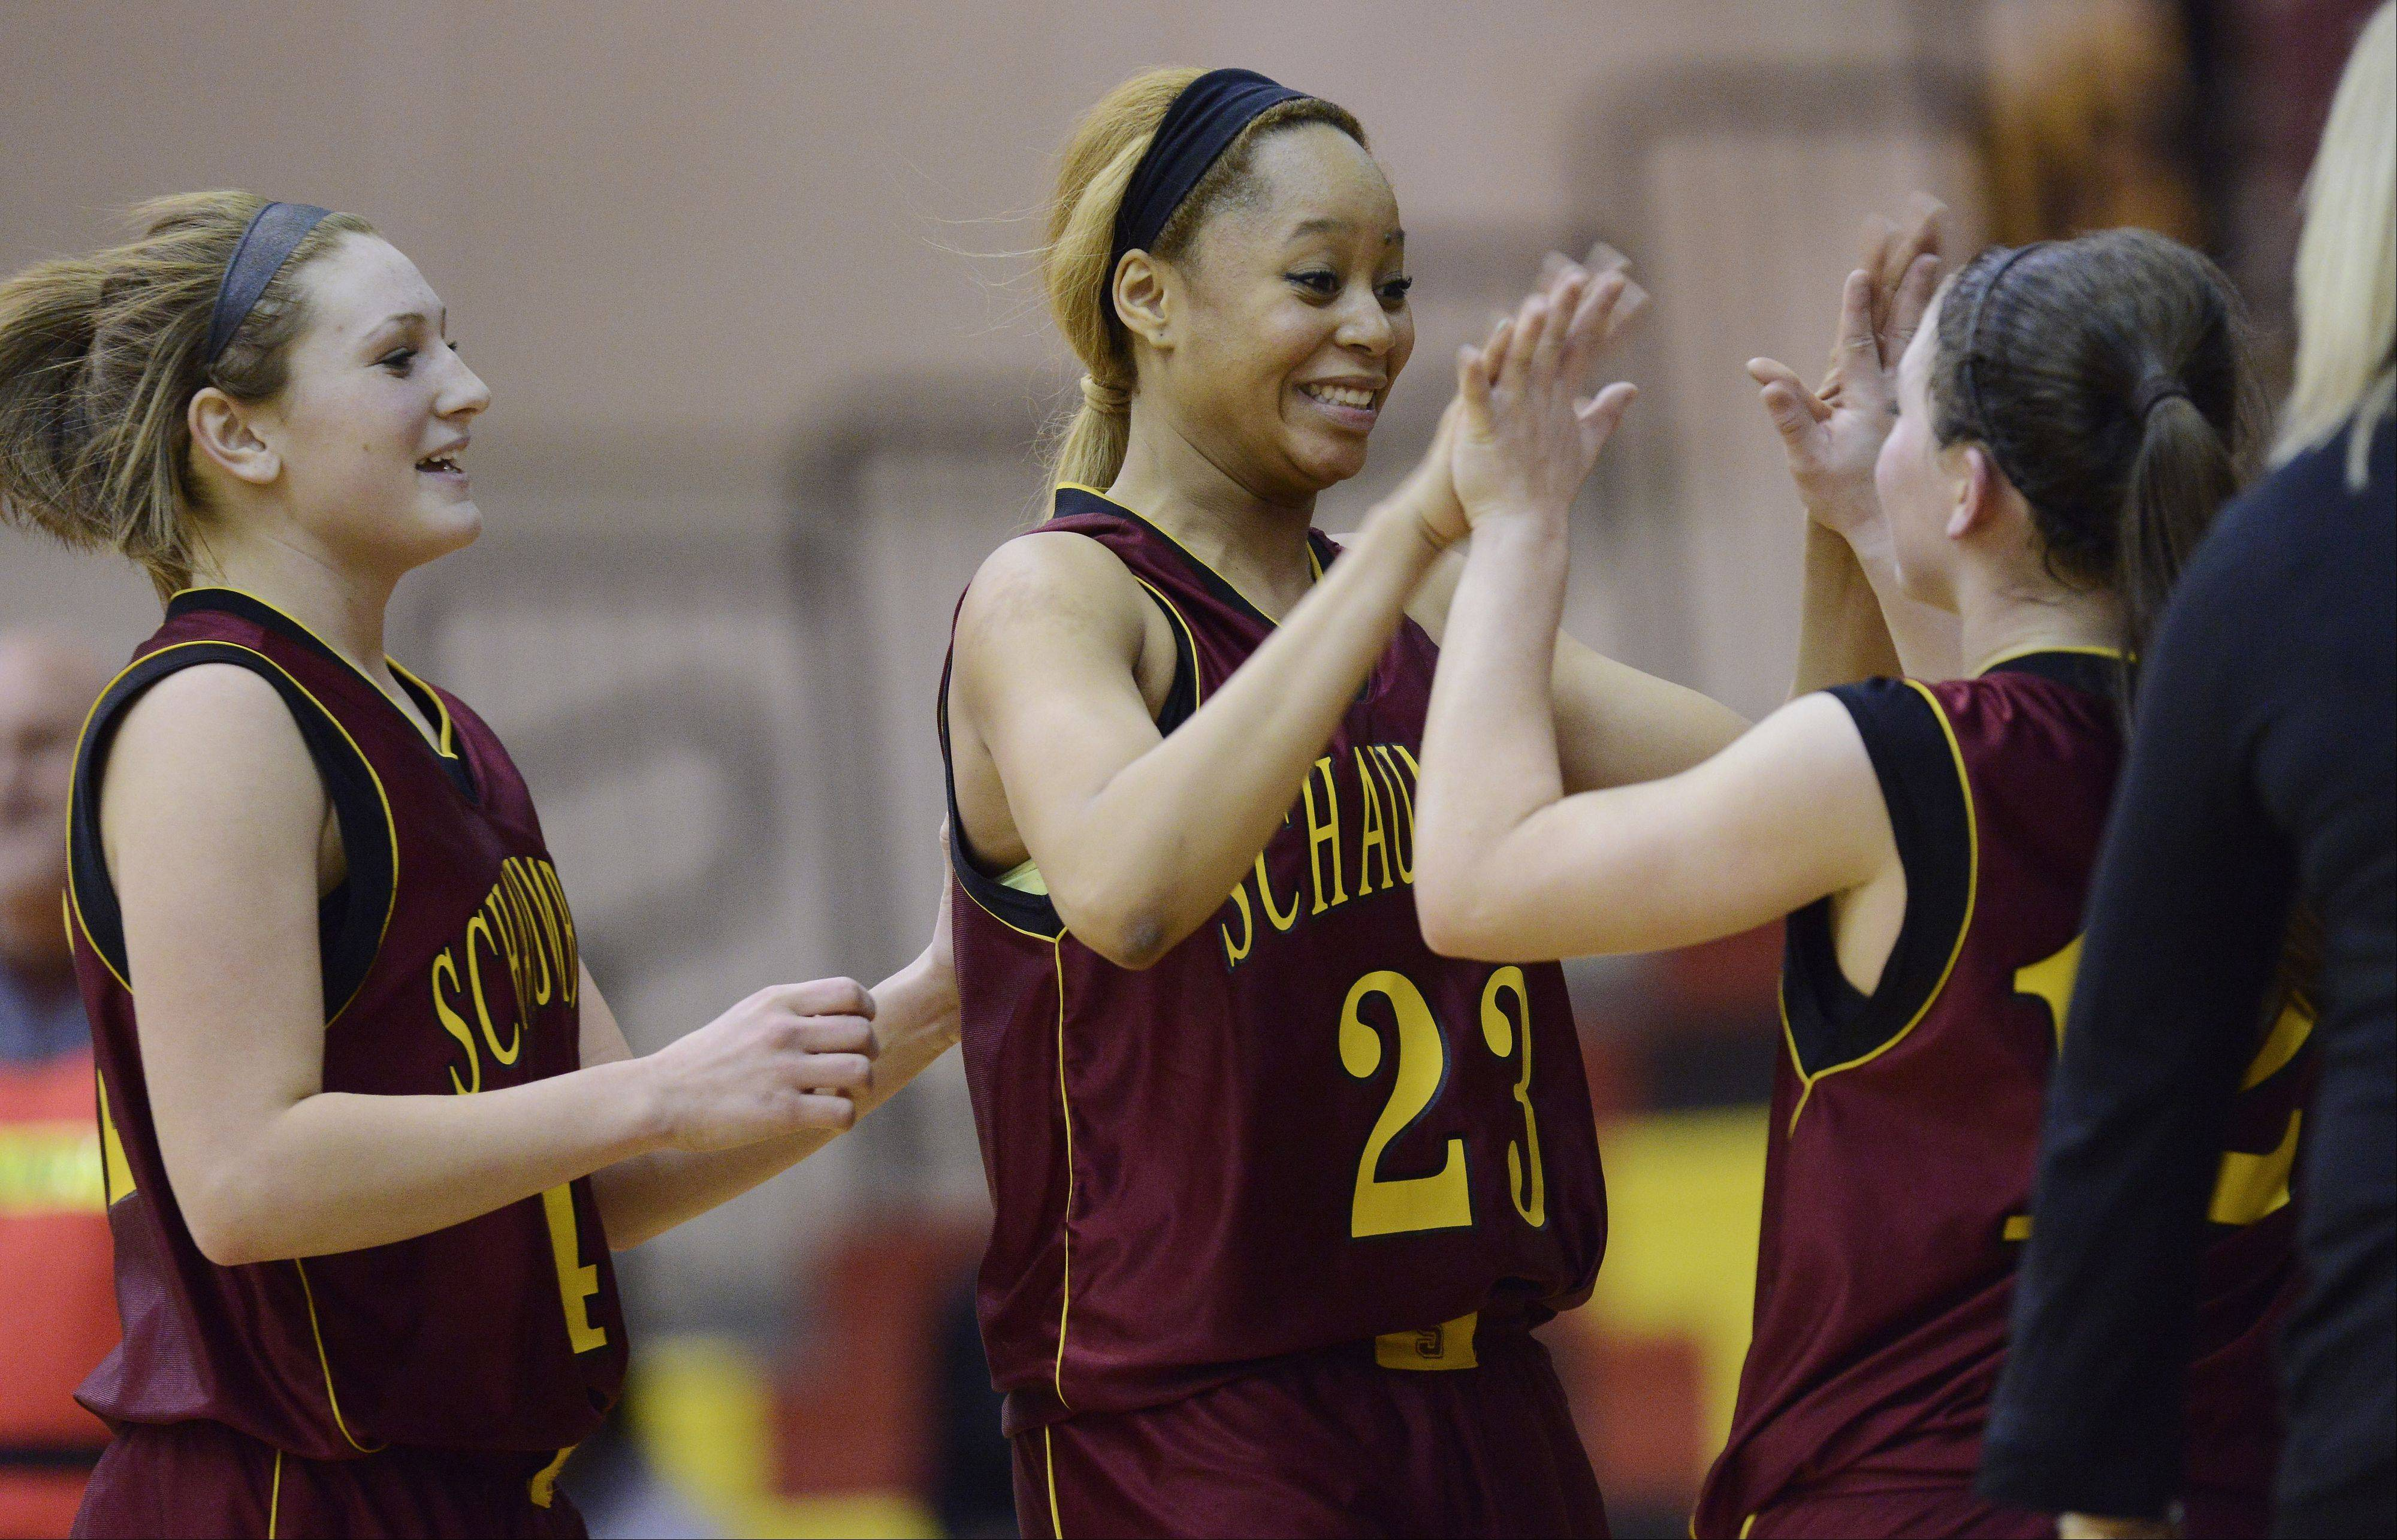 Images: Schaumburg vs. Proviso East, girls basketball